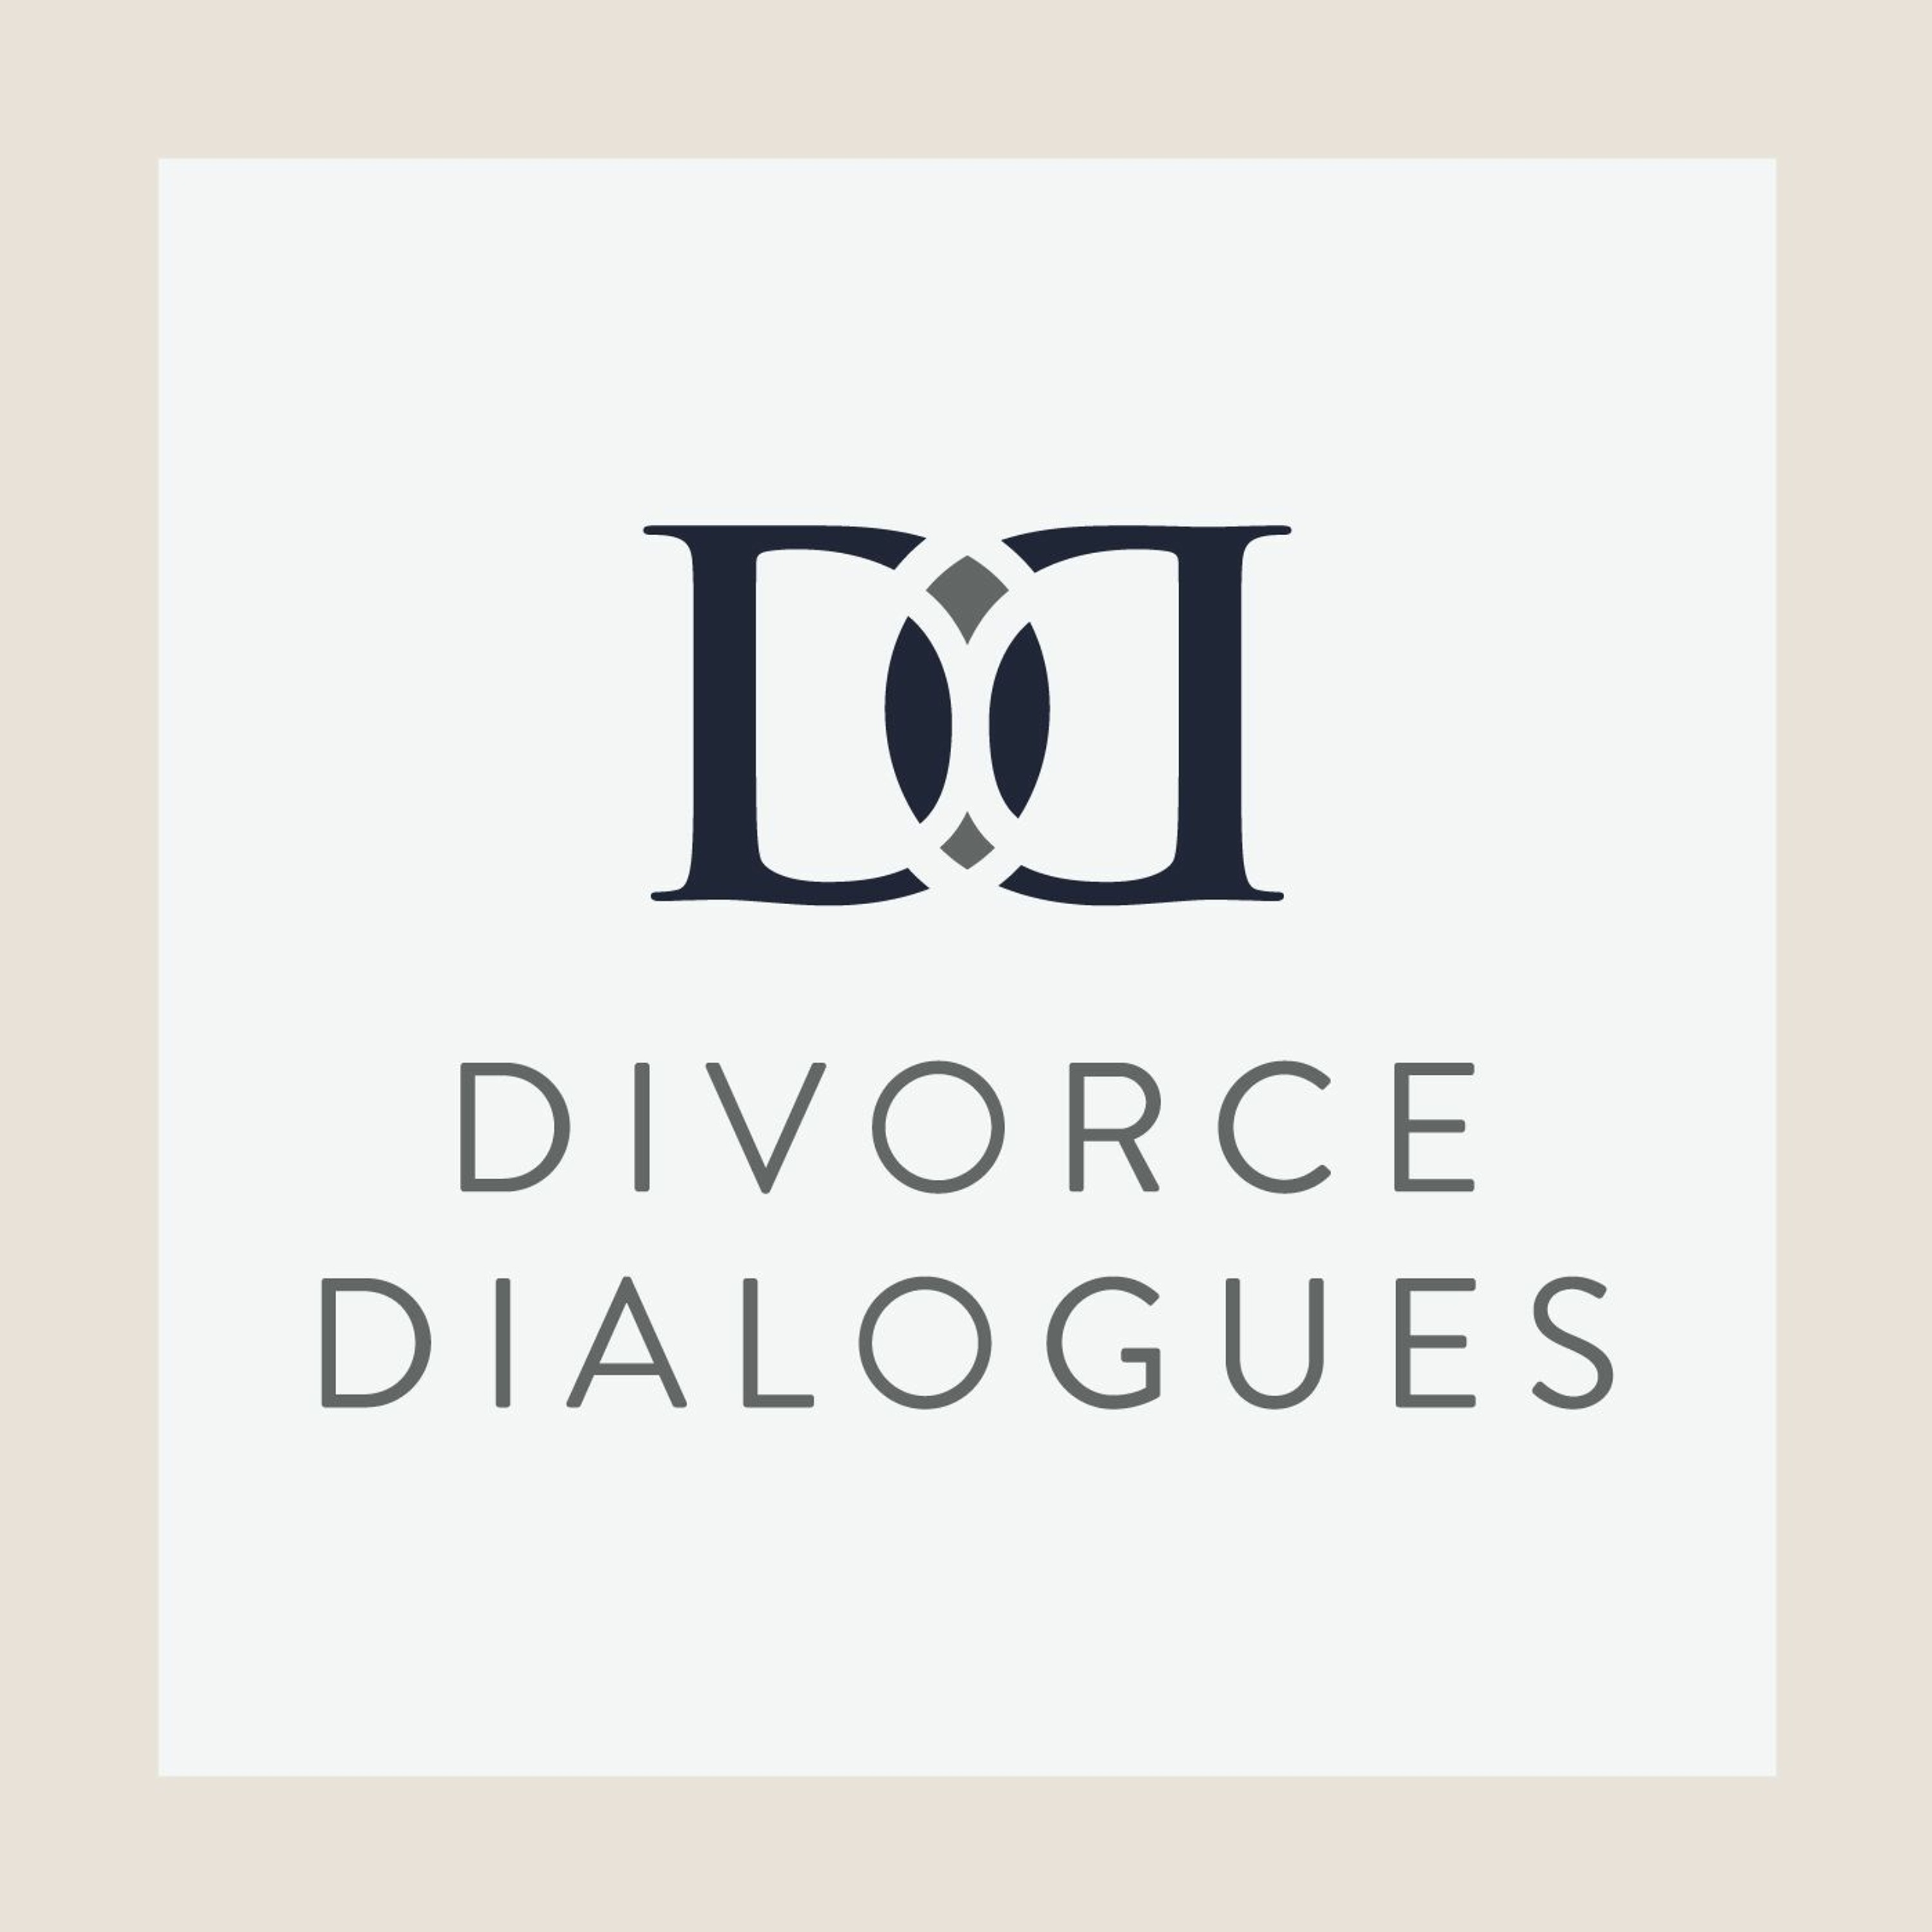 Divorce Dialogues - Approaching Divorce in a Child-Centered Way with Micki McWade